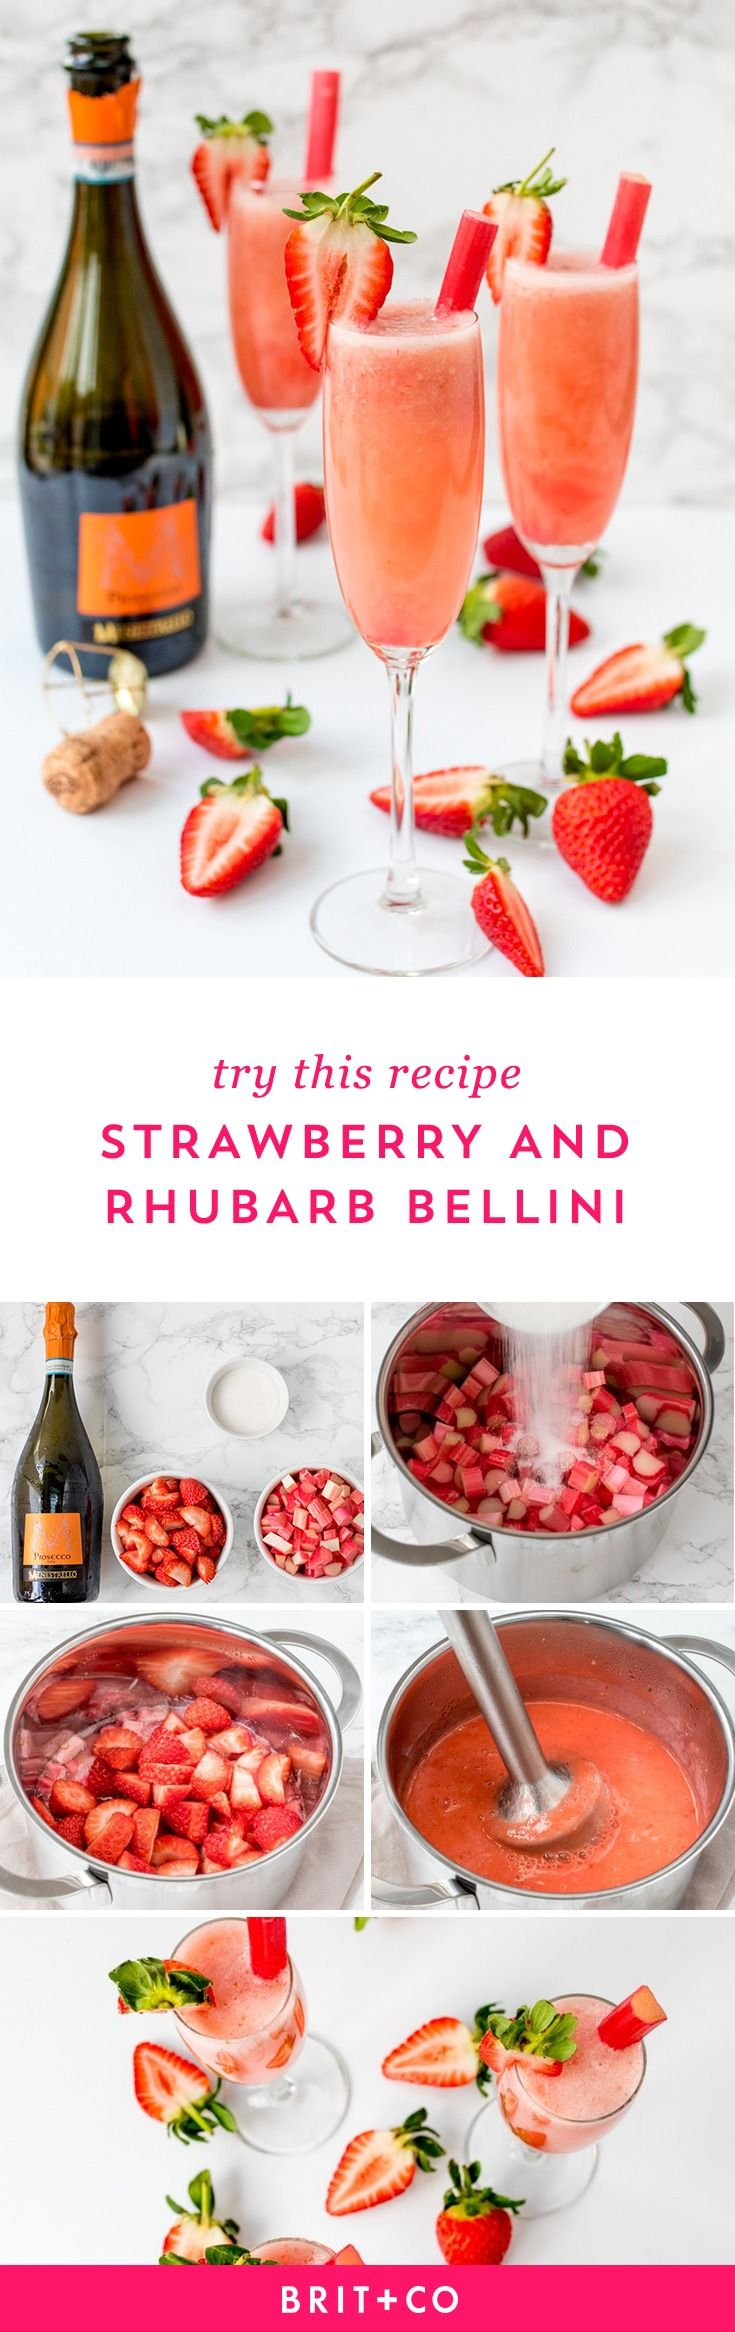 Celebrate the Oscars in style with this Strawberry + Rhubarb Bellini recipe.